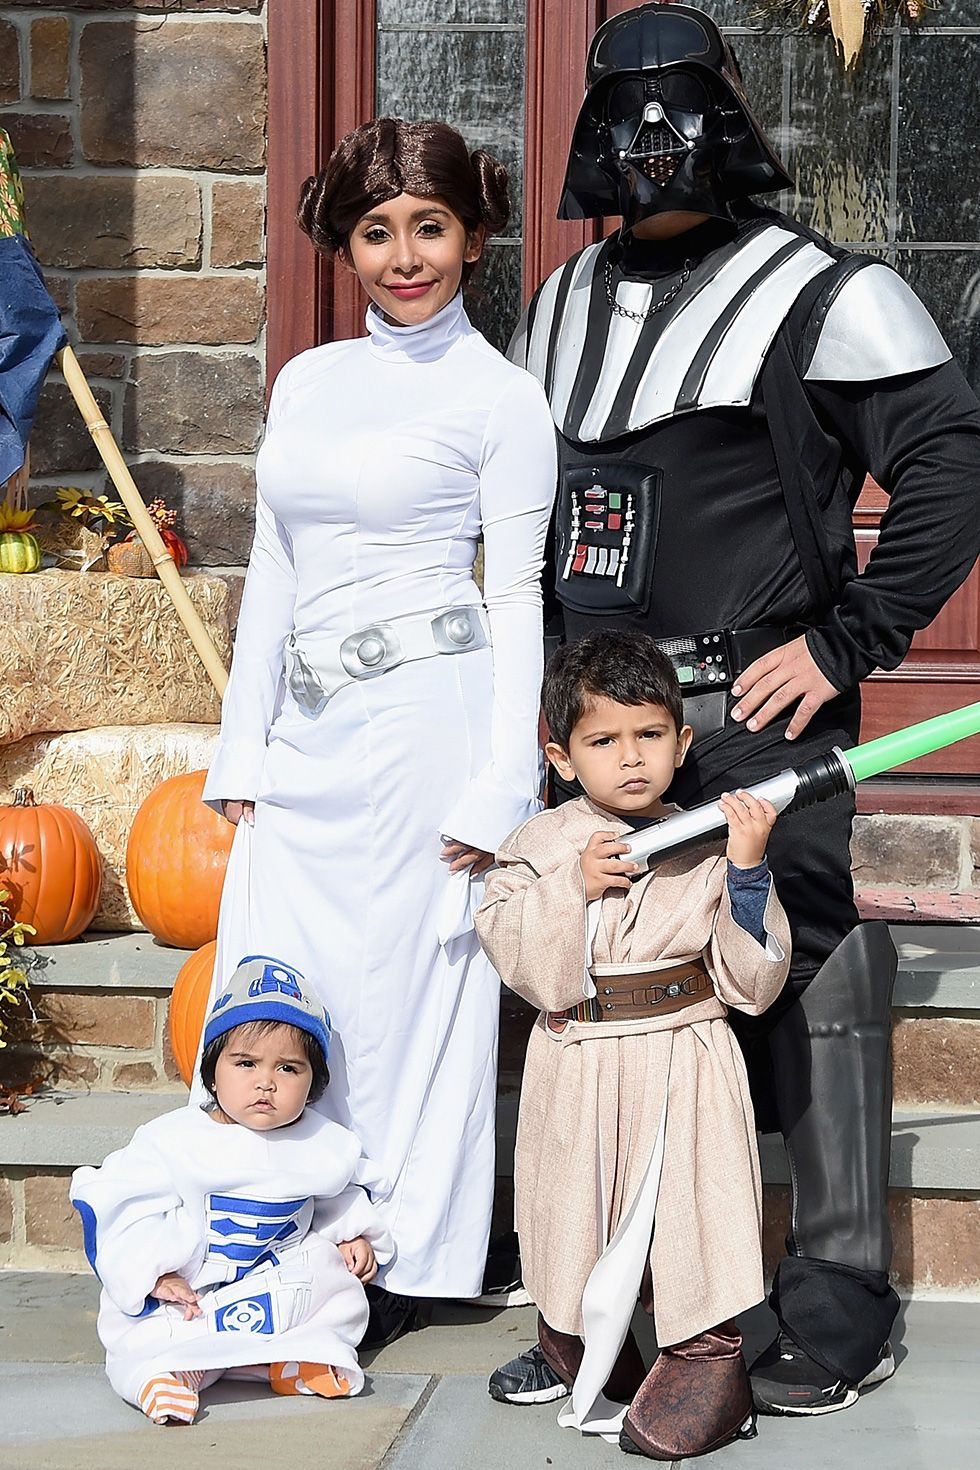 Nicole 'Snooki' Polizzi and Jionni Lavalle - 'Star Wars' Characters Jersey Shore 's Nicole 'Snooki' Polizzi, husband Jionni Lavalle, and their kids dressed up as Star Wars characters in 2015. They have another kiddo now, so it'll be fun to see what they break out for 2019..